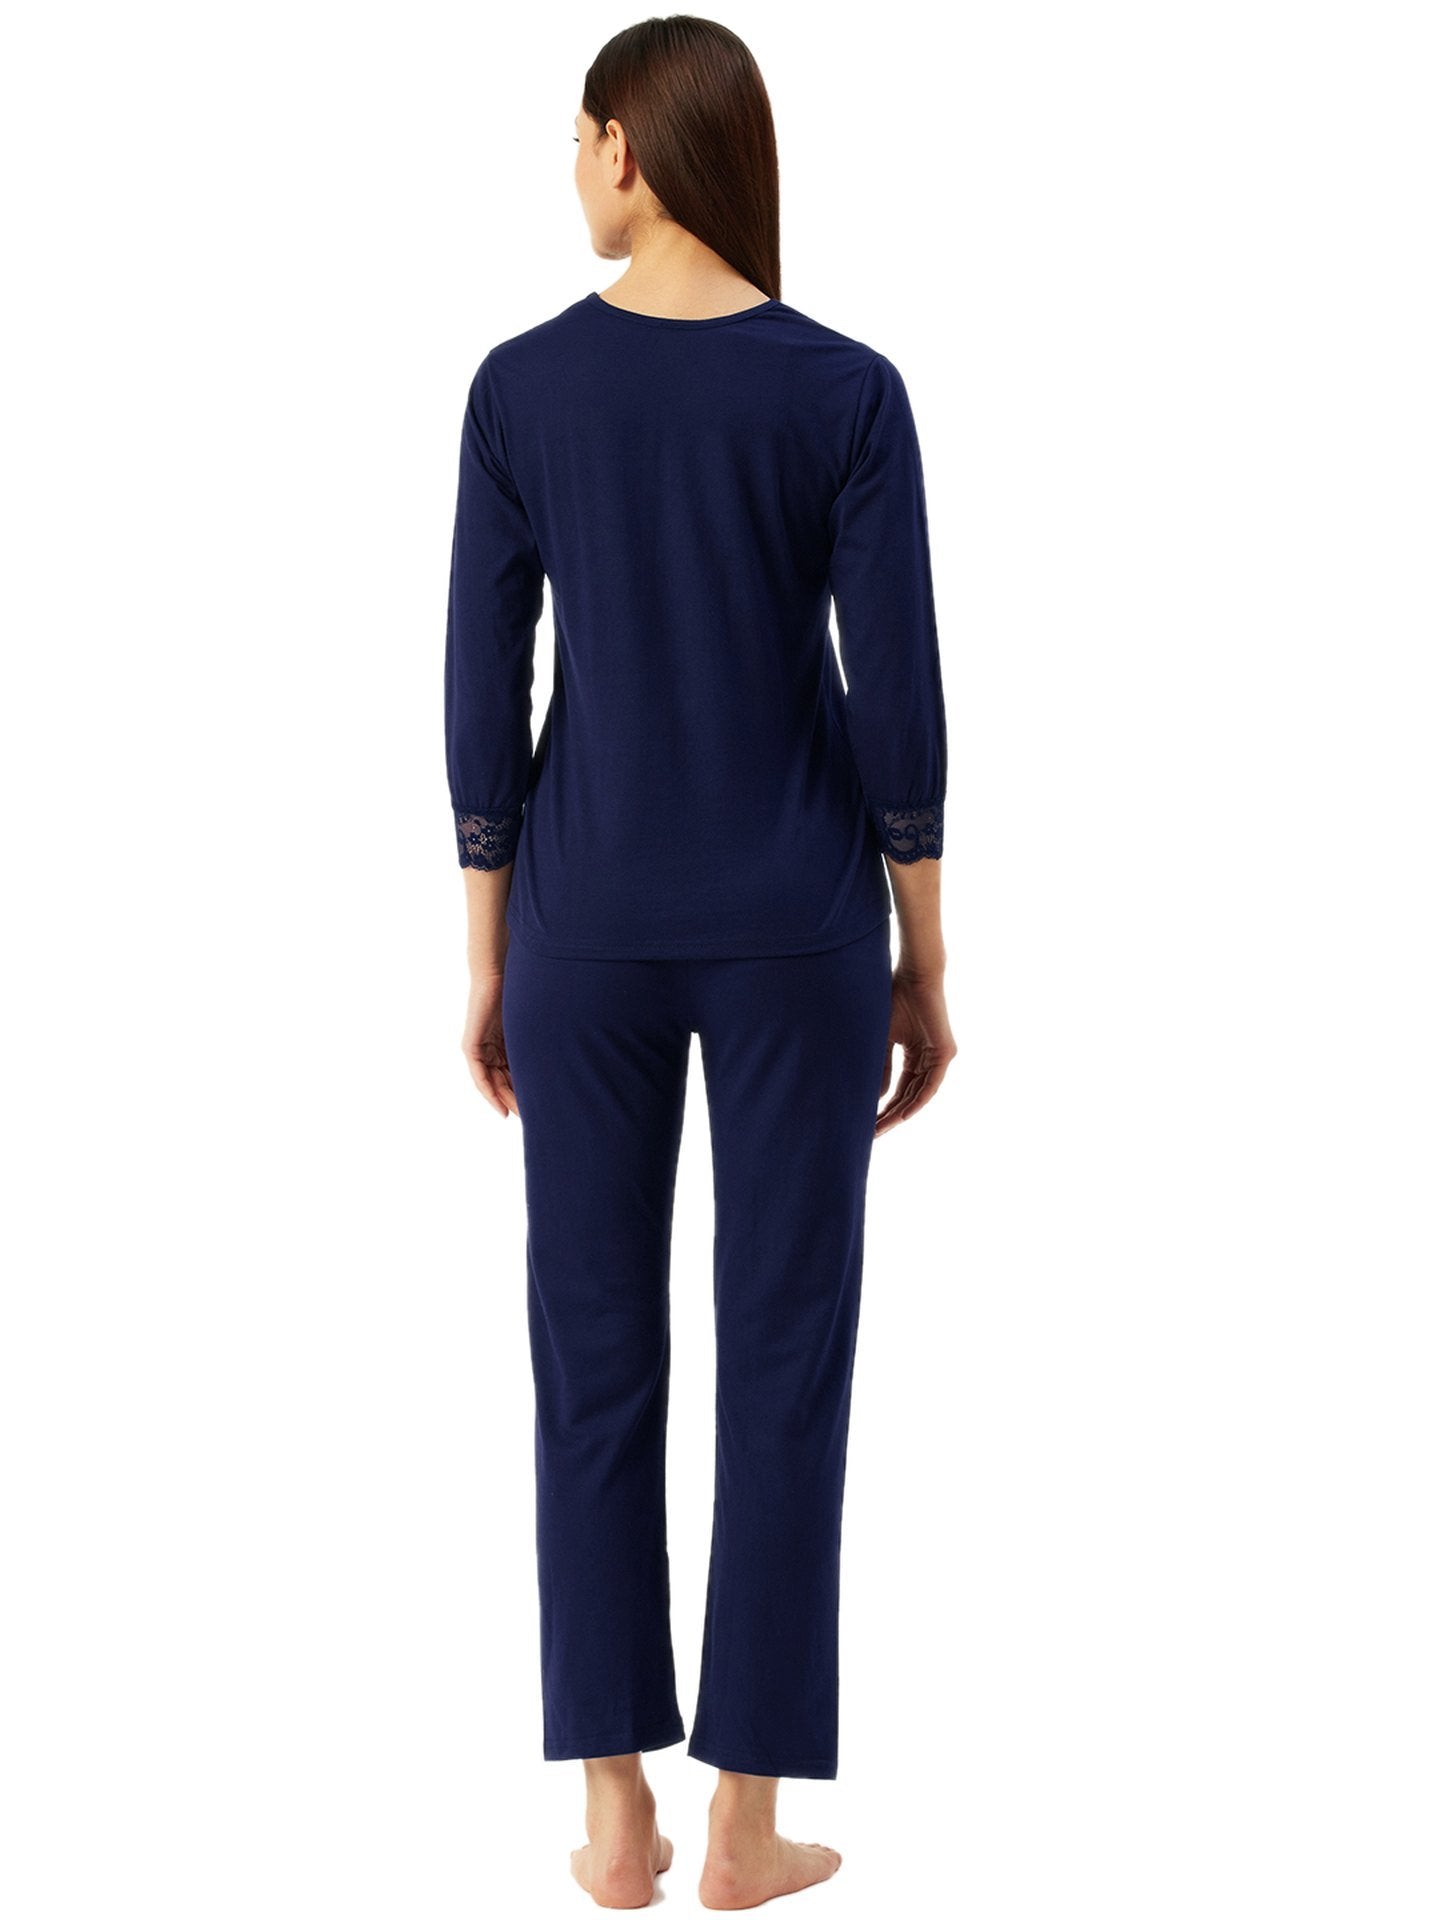 Klamotten Women's Top & Pyjama Nightsuit N104N